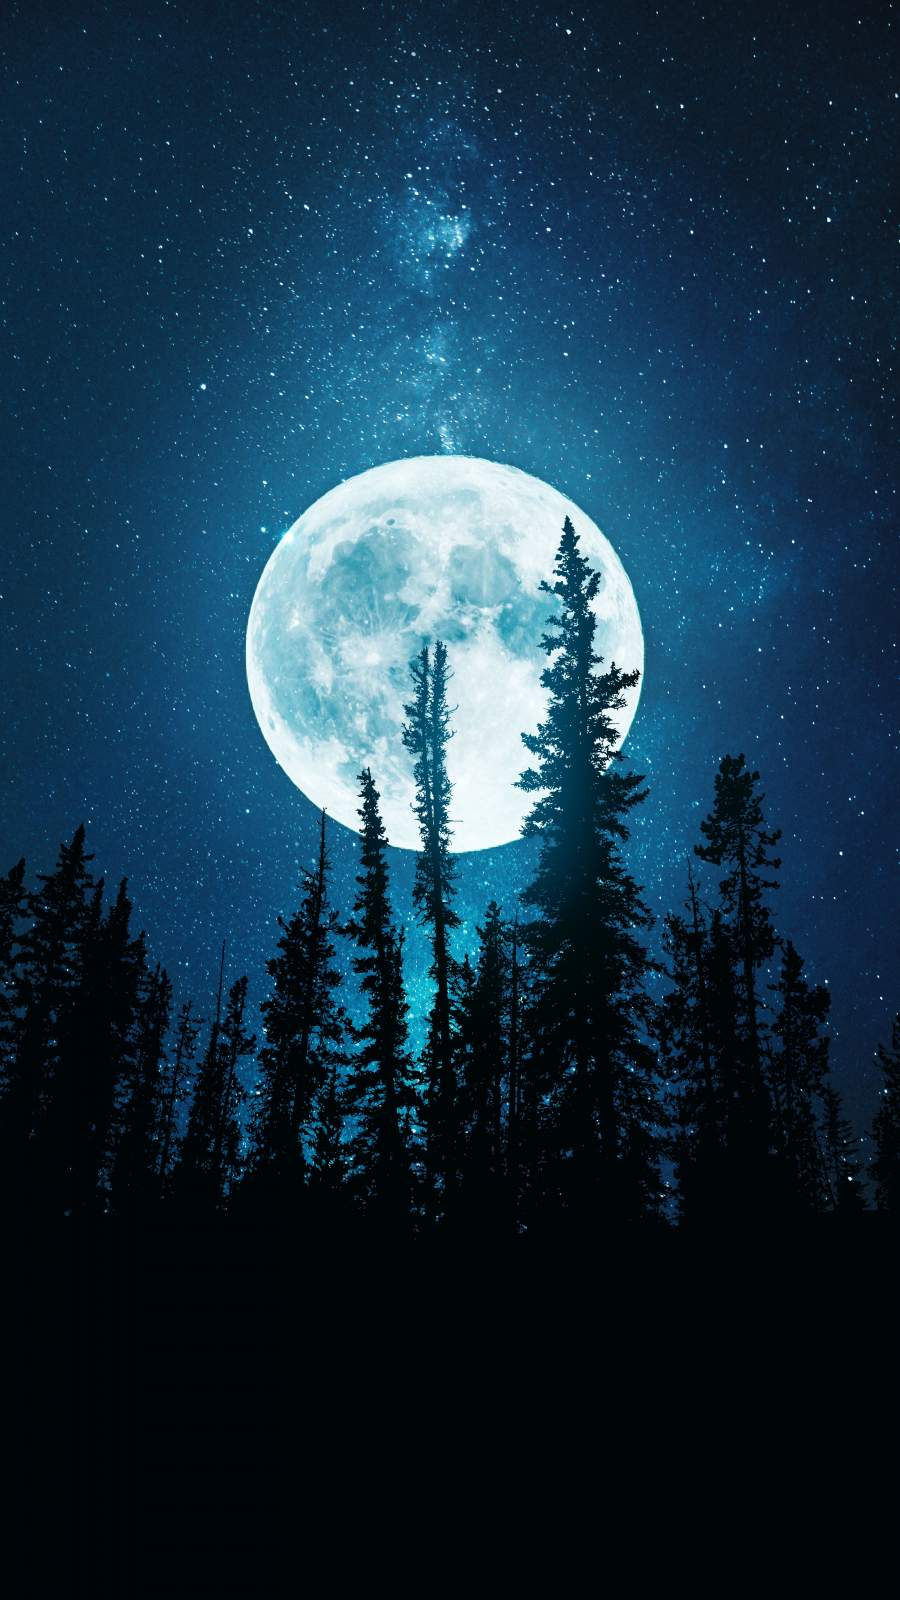 Night Trees and Moon